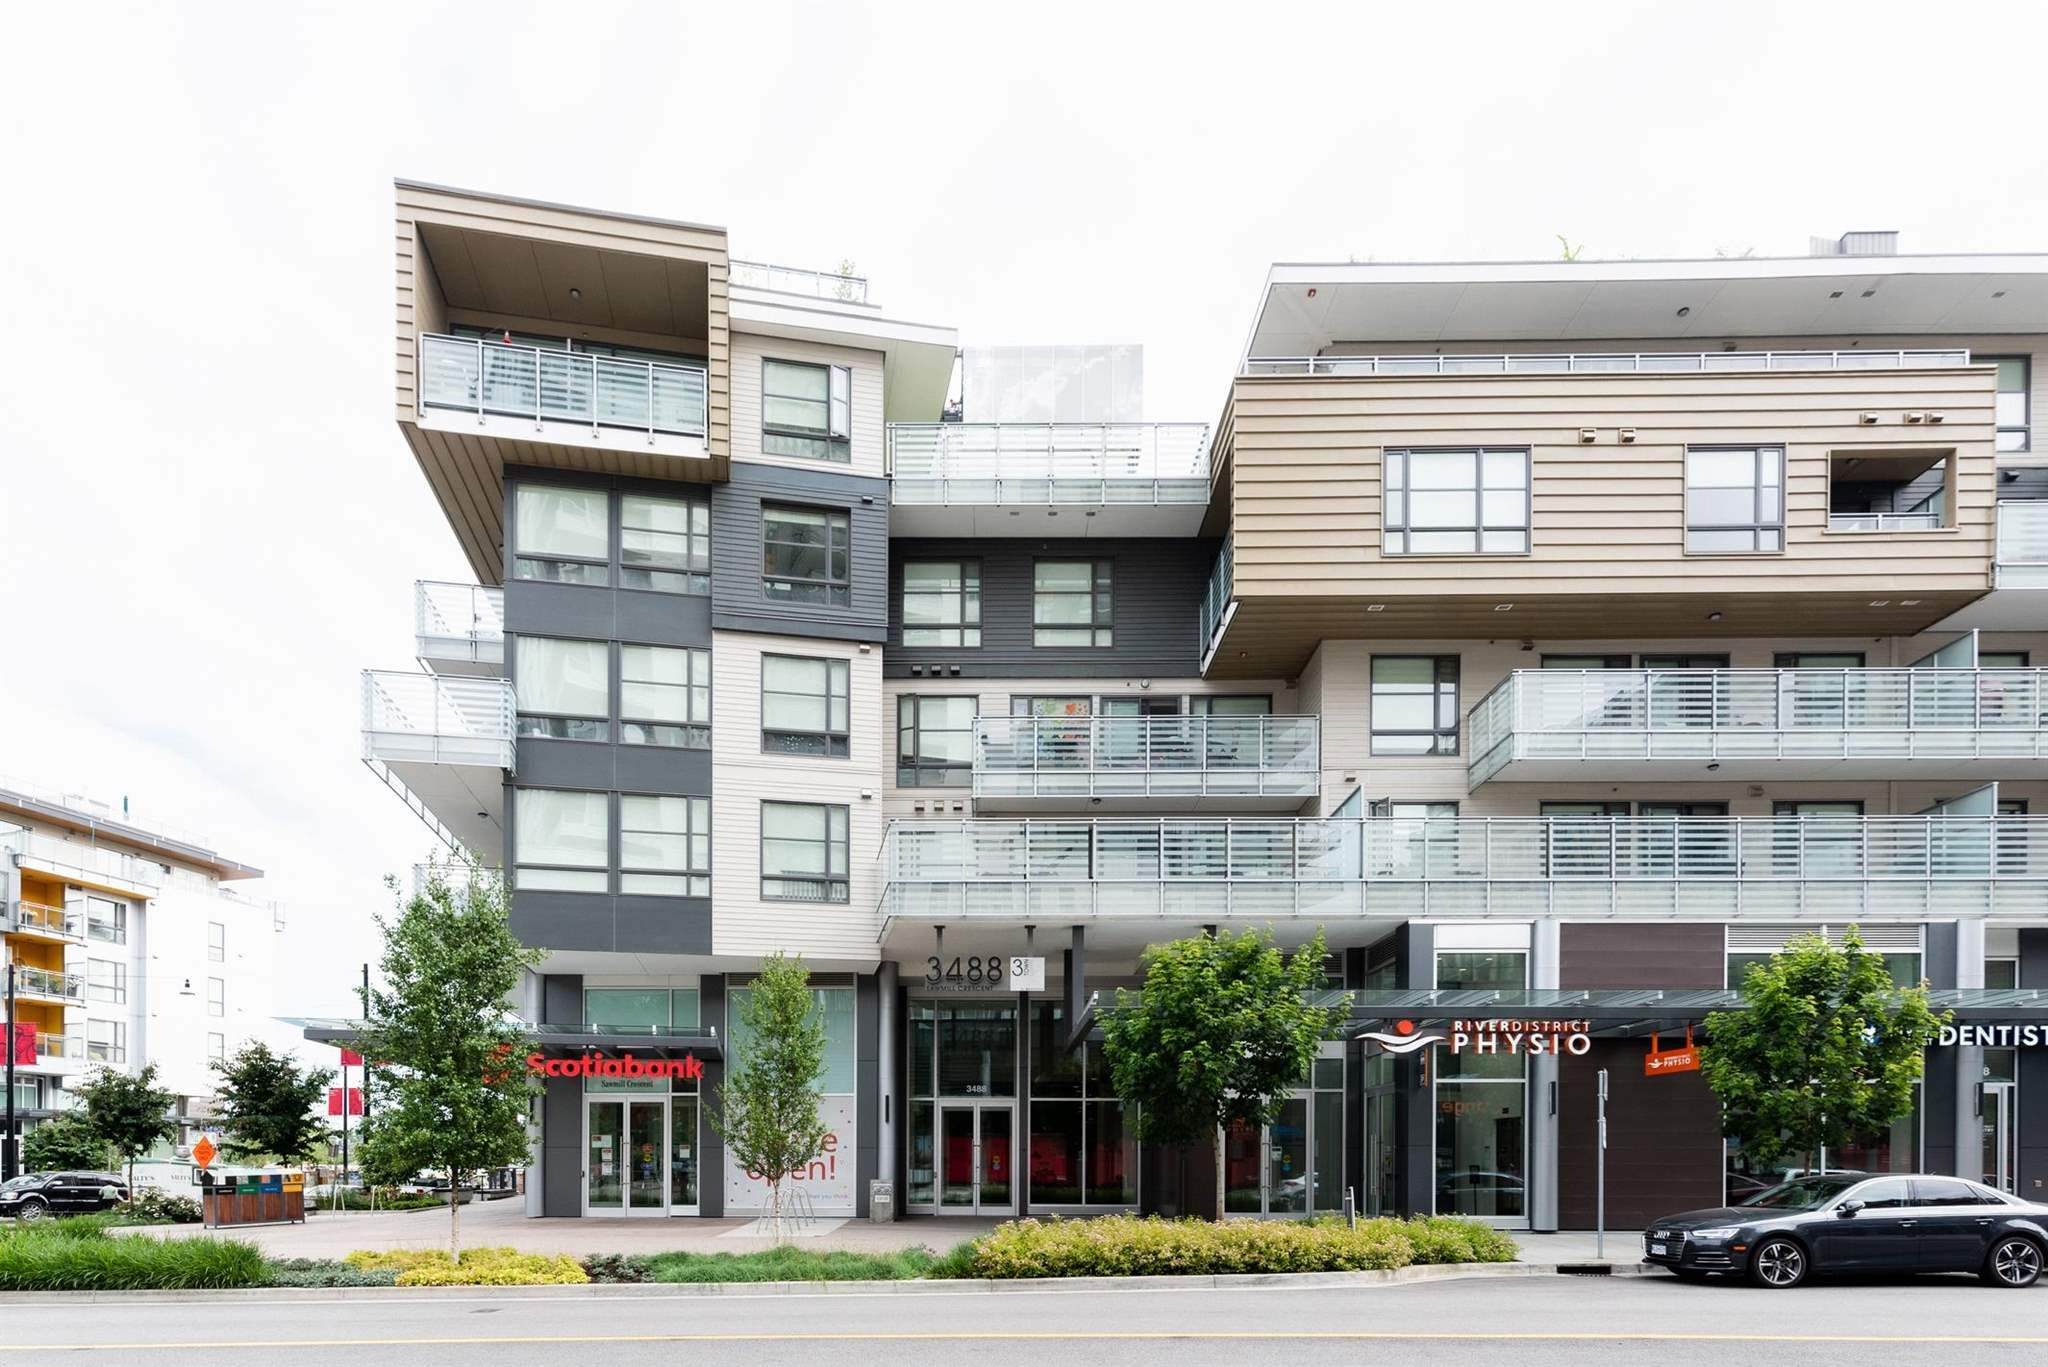 """Main Photo: 517 3488 SAWMILL Crescent in Vancouver: South Marine Condo for sale in """"River District - 3 Town Center"""" (Vancouver East)  : MLS®# R2598400"""